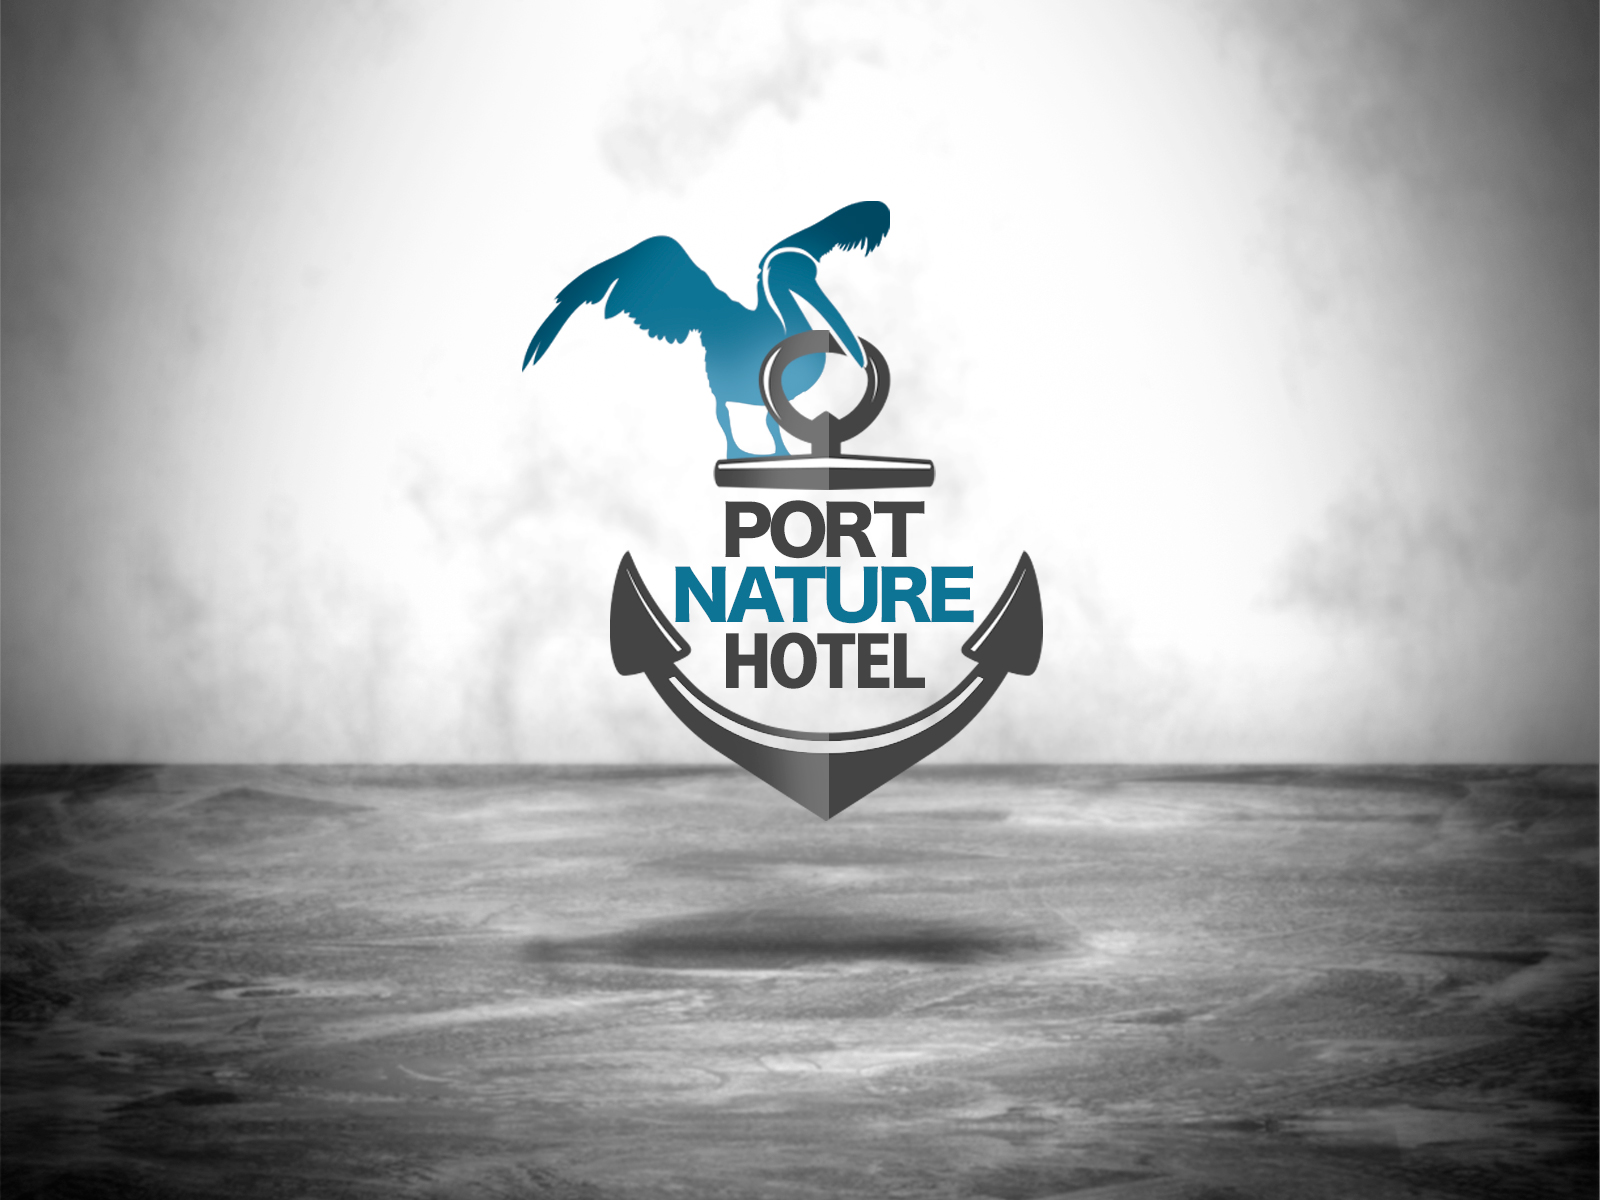 Port Nature Holet